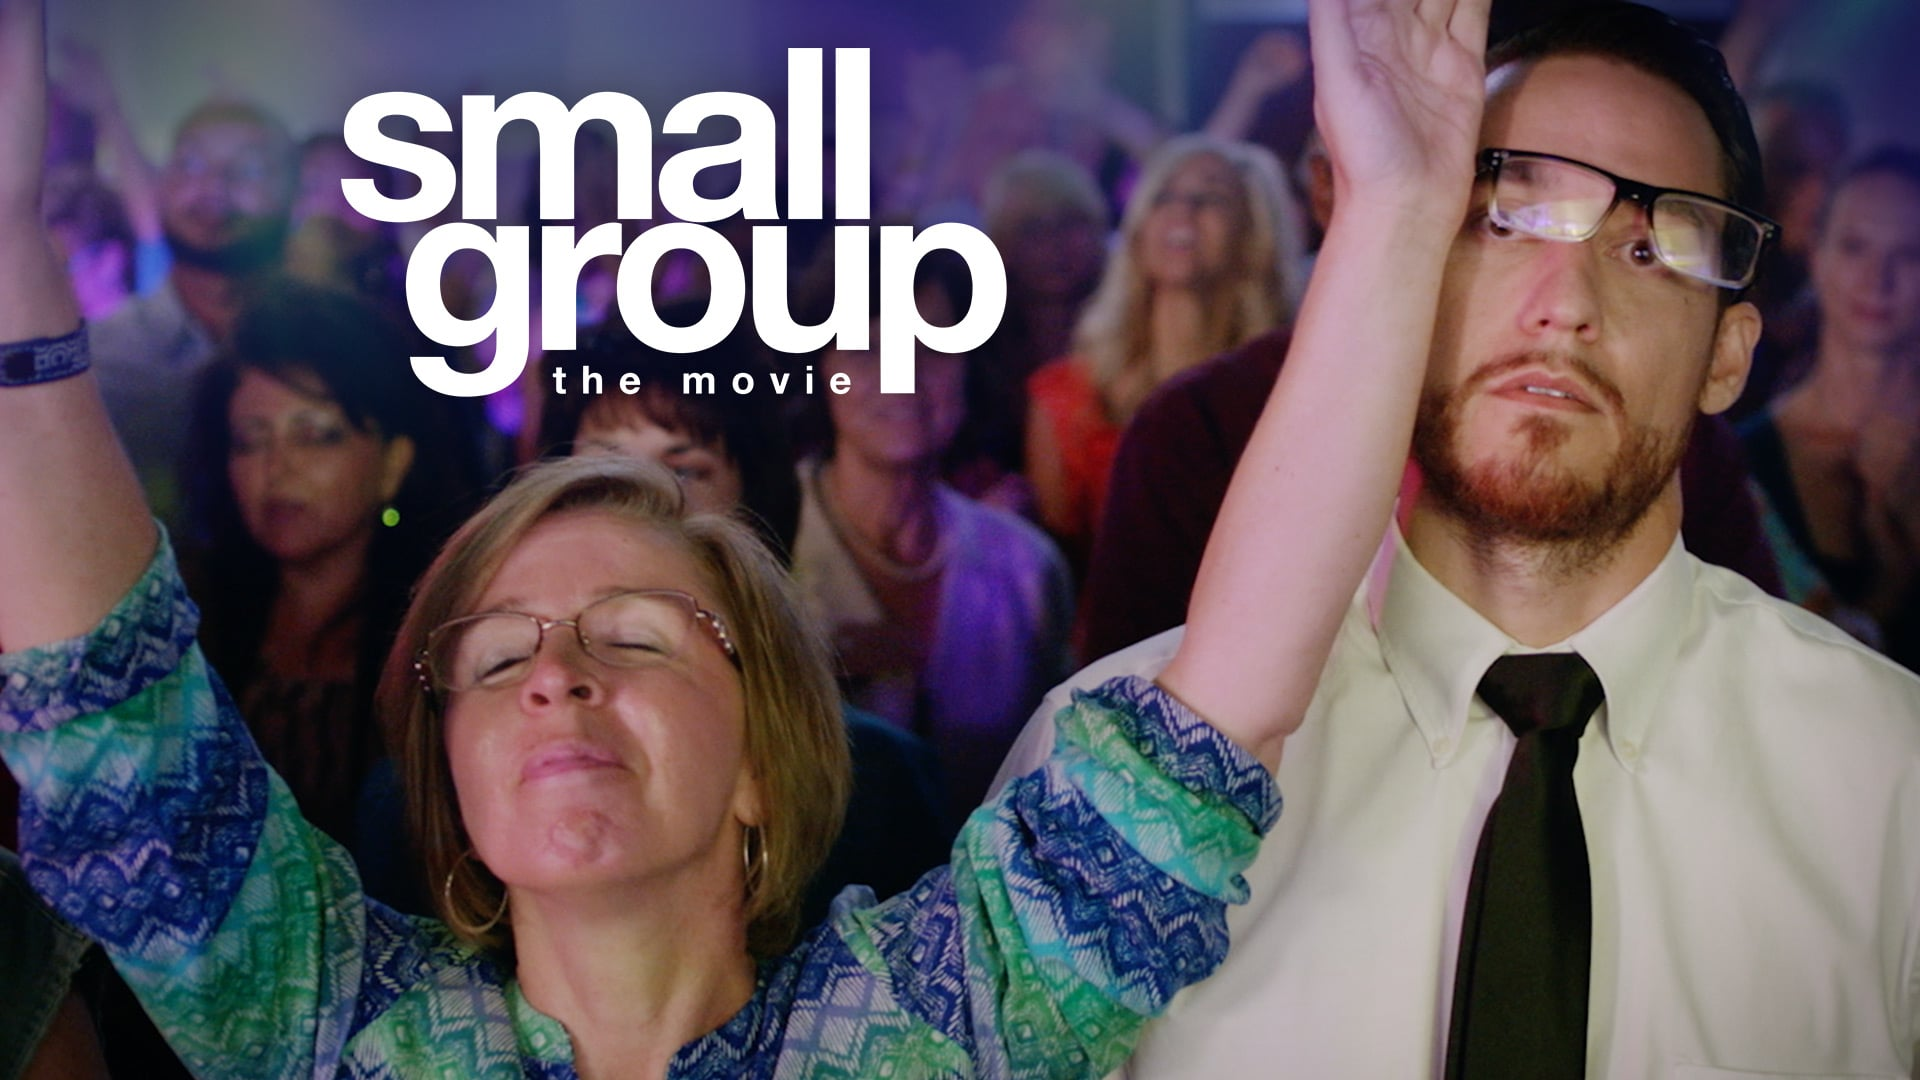 Small Group - Trailer 2